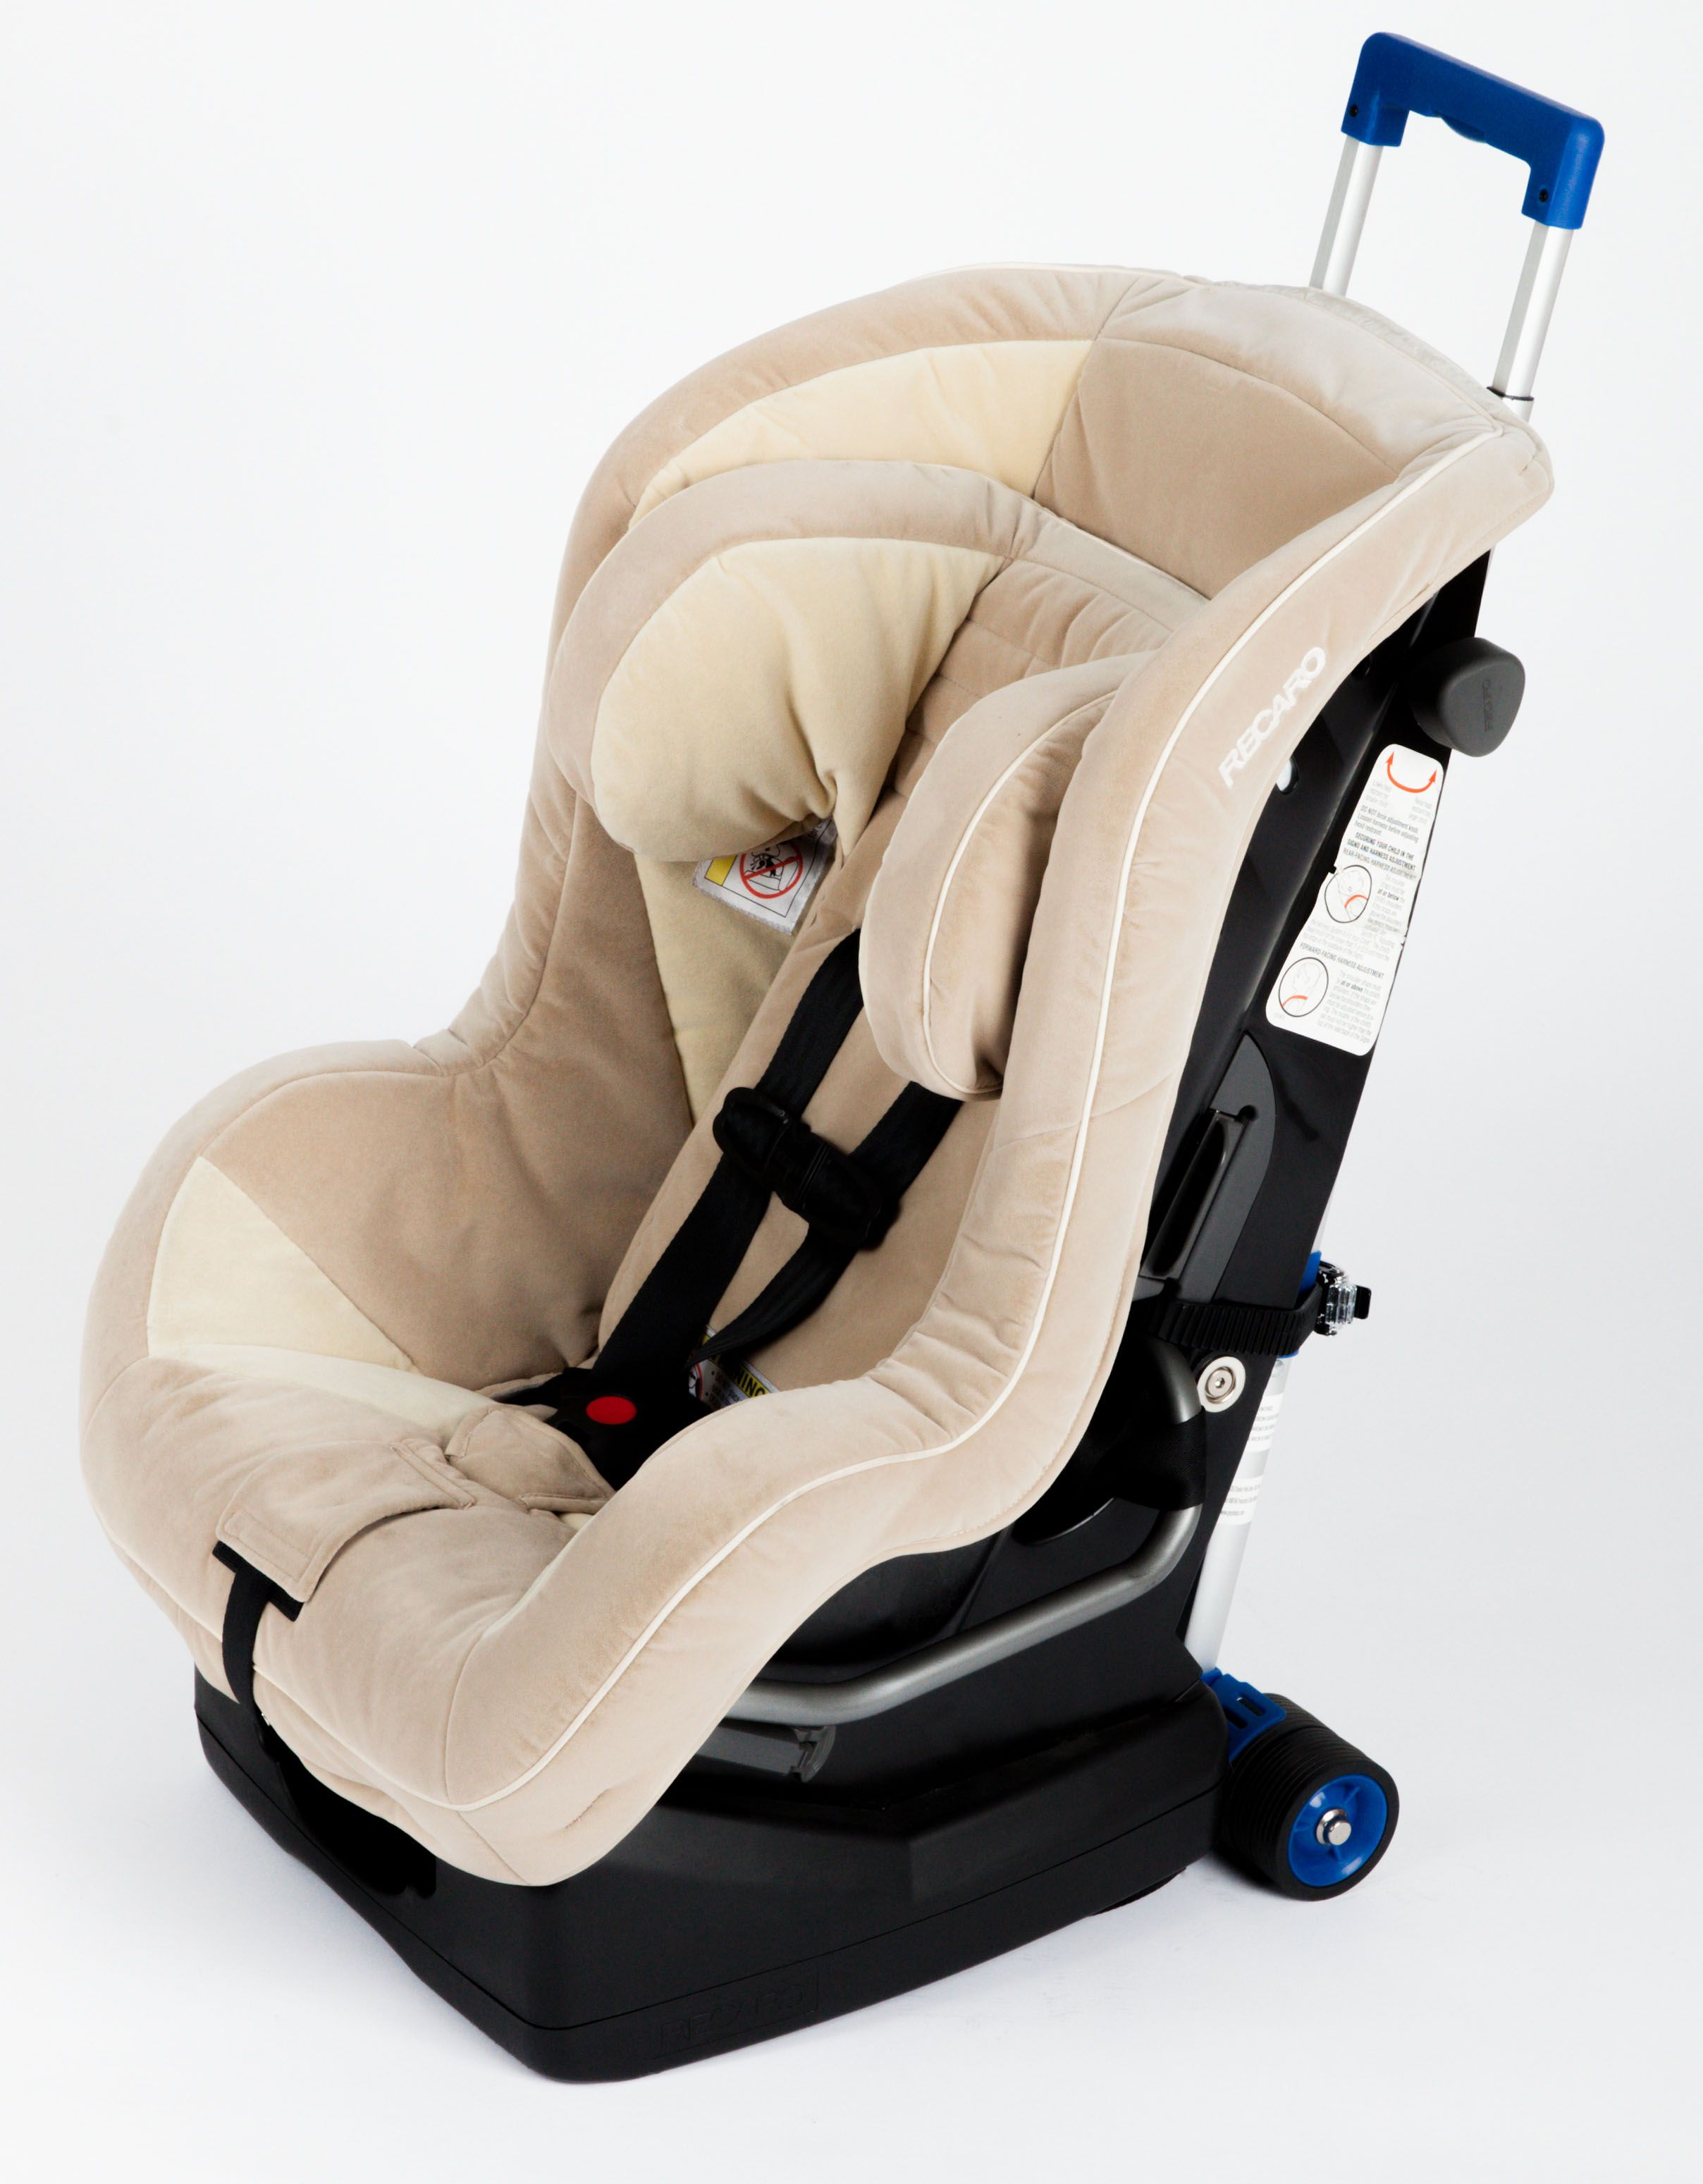 Convert Your Carseat To A Stroller In Minute And Wheel It Smoothly Through The Airport While Child Rides Comfortably Safely Inside